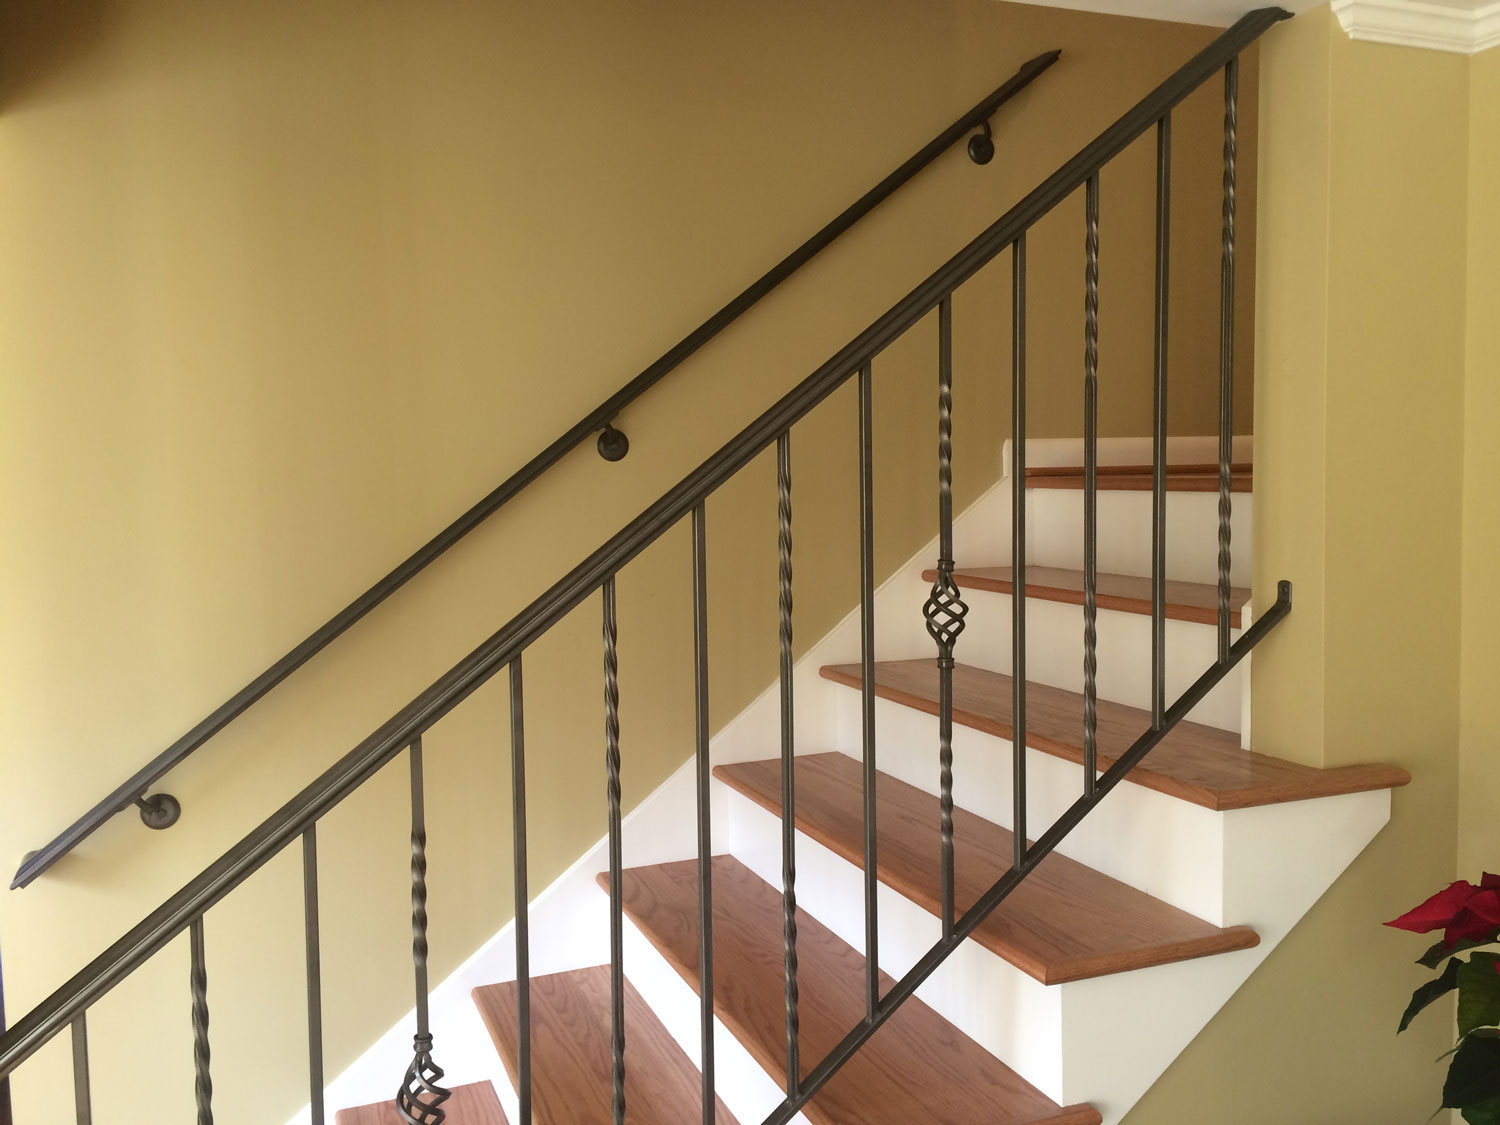 Traditional Handrail and Guardrail for Interior Stairs - Close Up - Seattle, WA